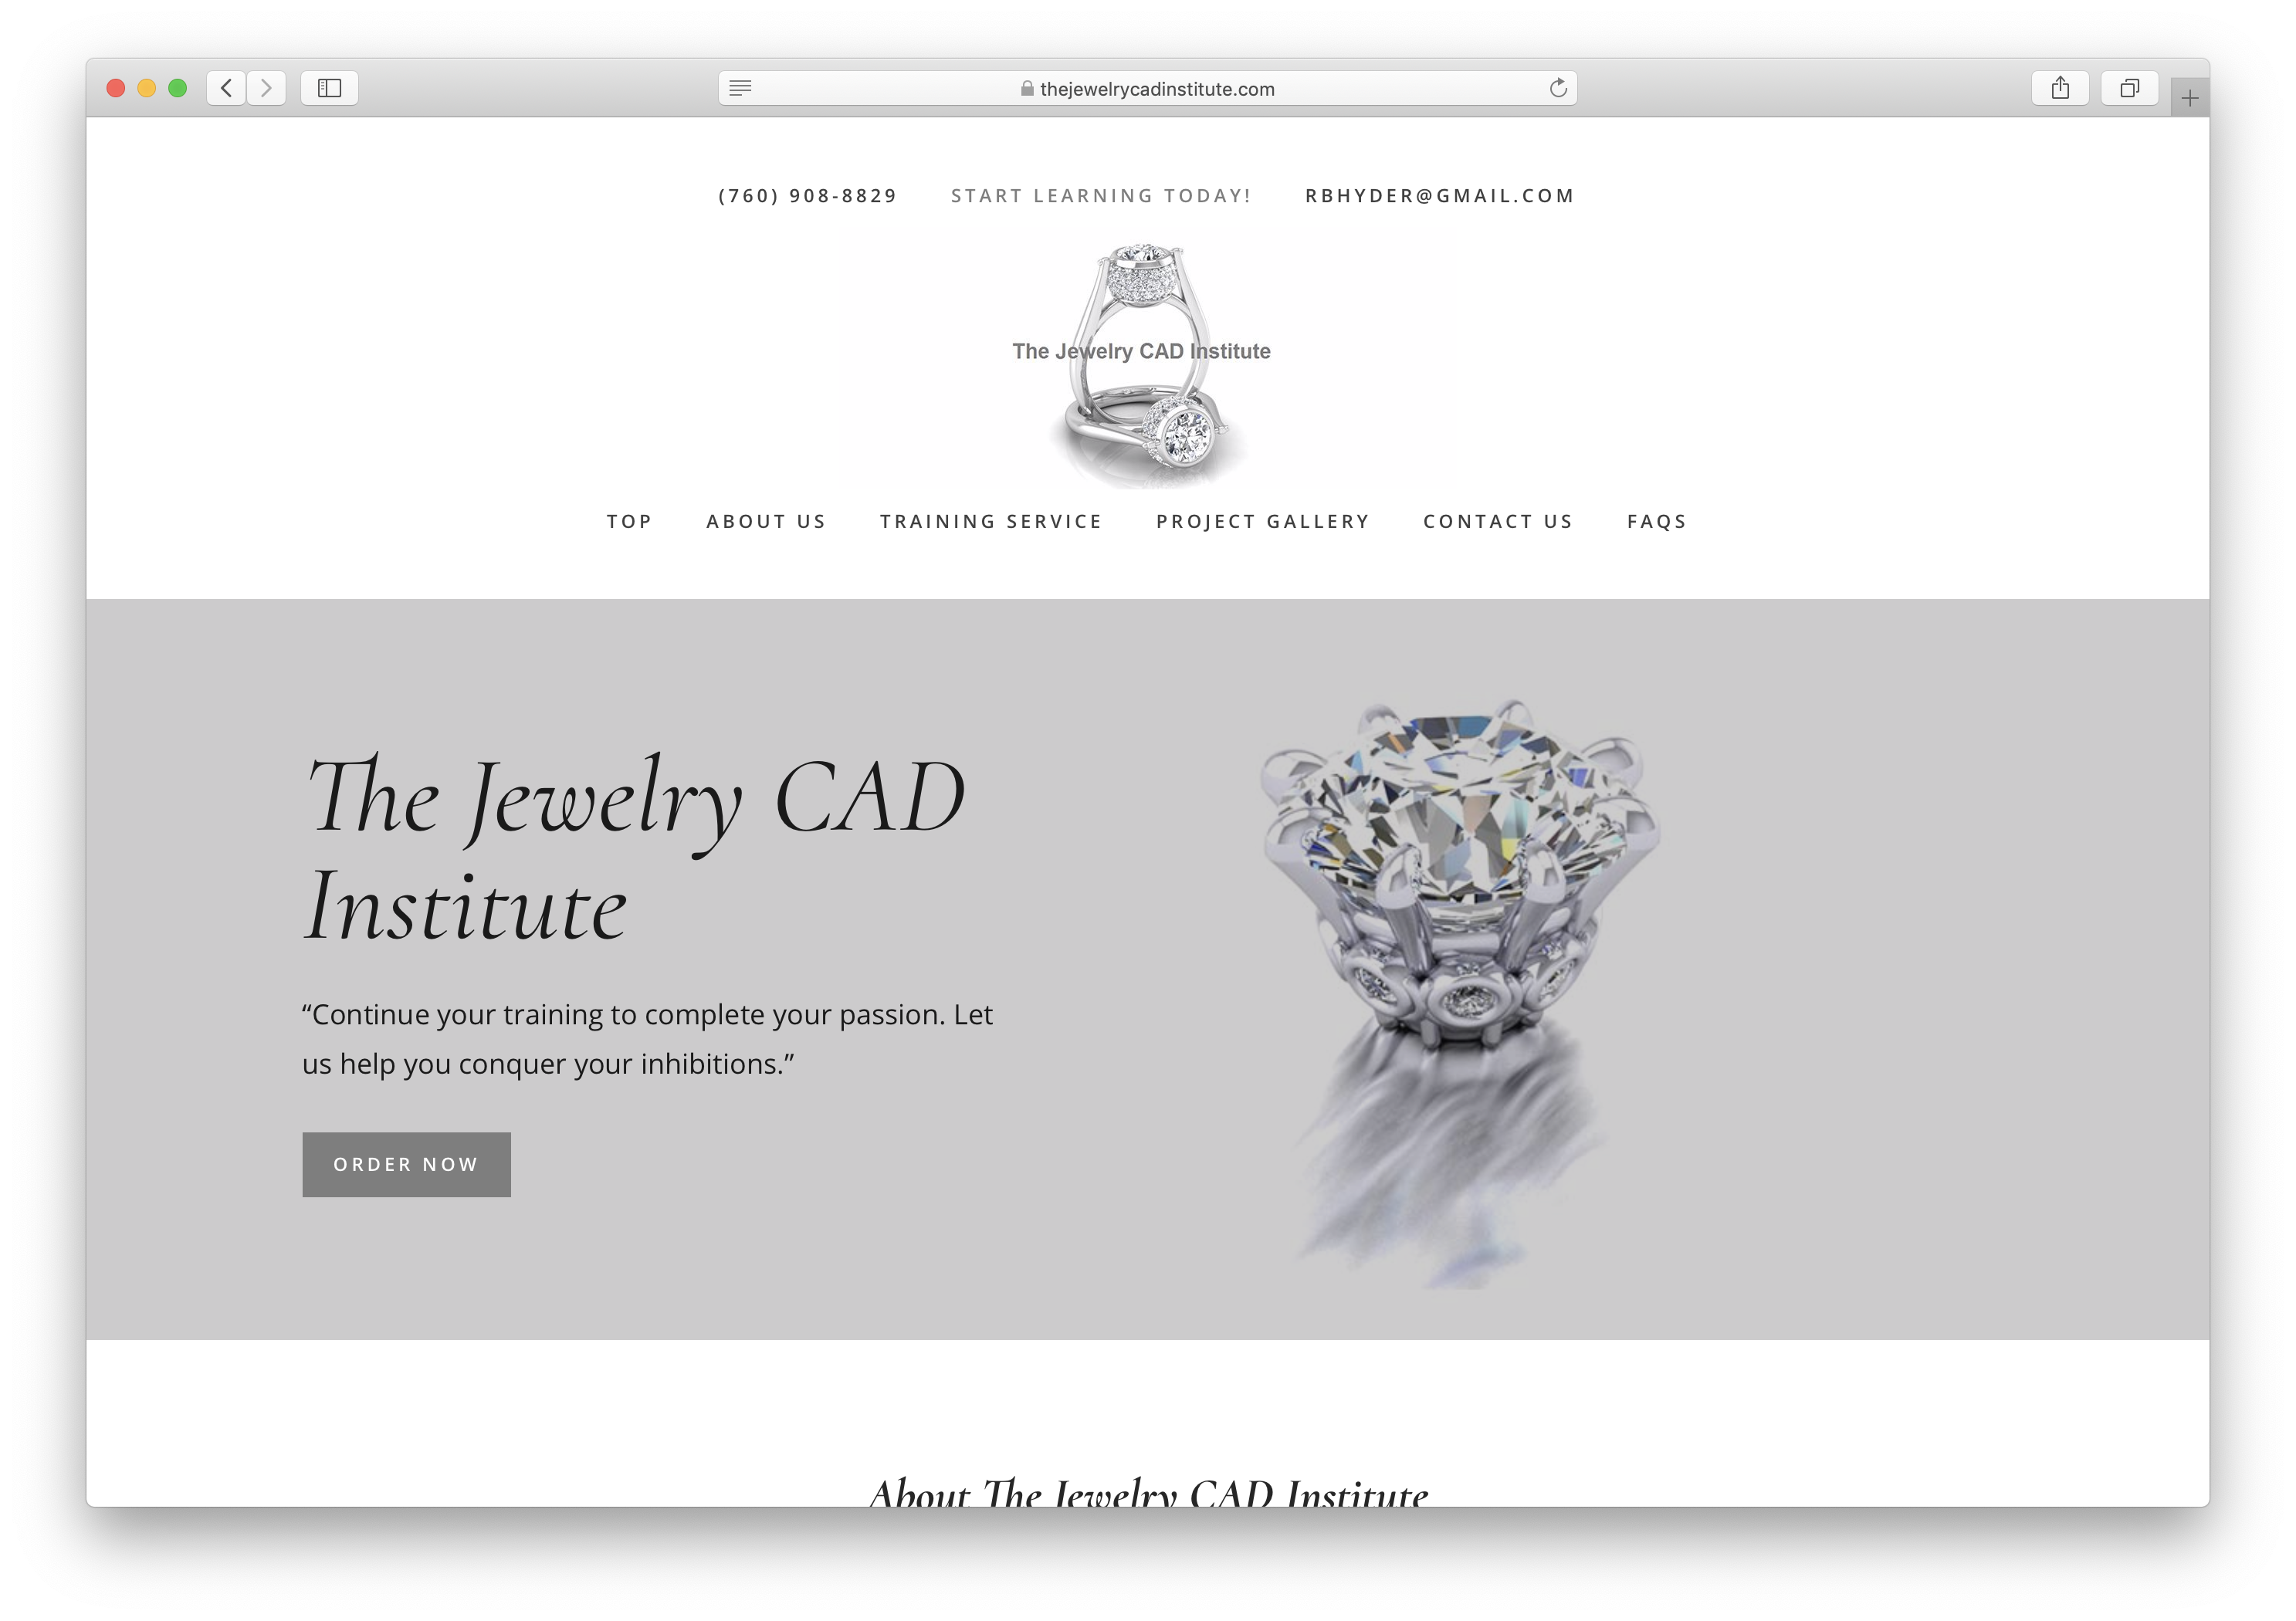 The Jewelry CAD Institute web